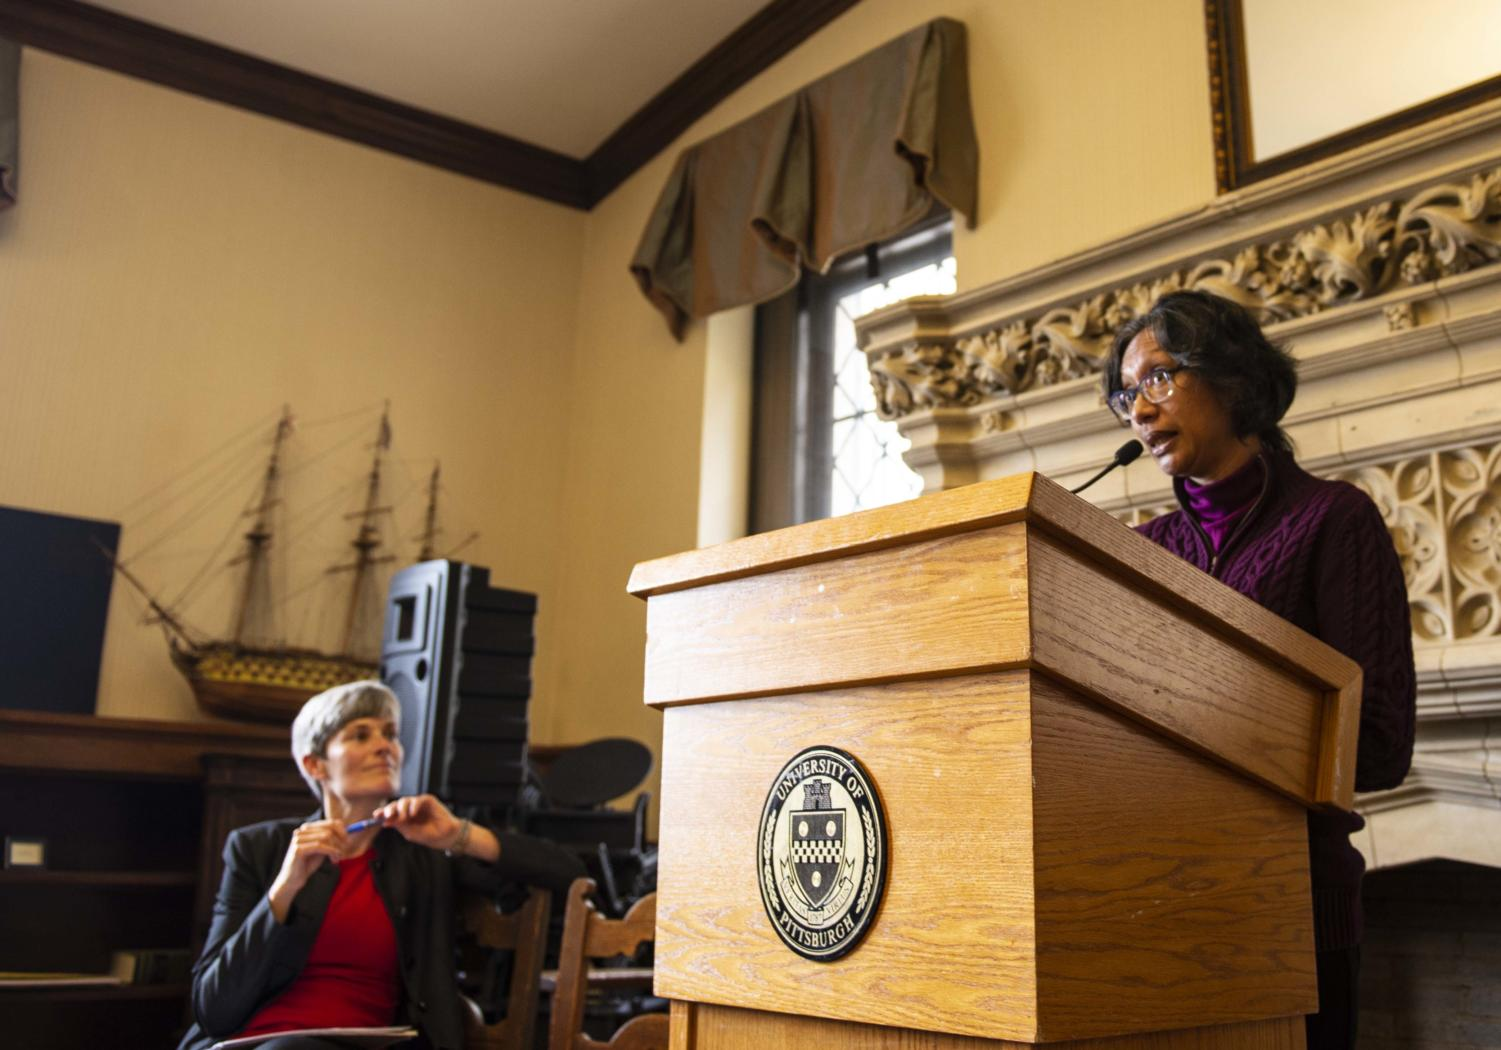 Amy Wildermuth (left) looks on as Shanti Gamper-Rabindran discusses current issues in environmental policy at the Green Speakeasy event in the University Club Library Wednesday afternoon.